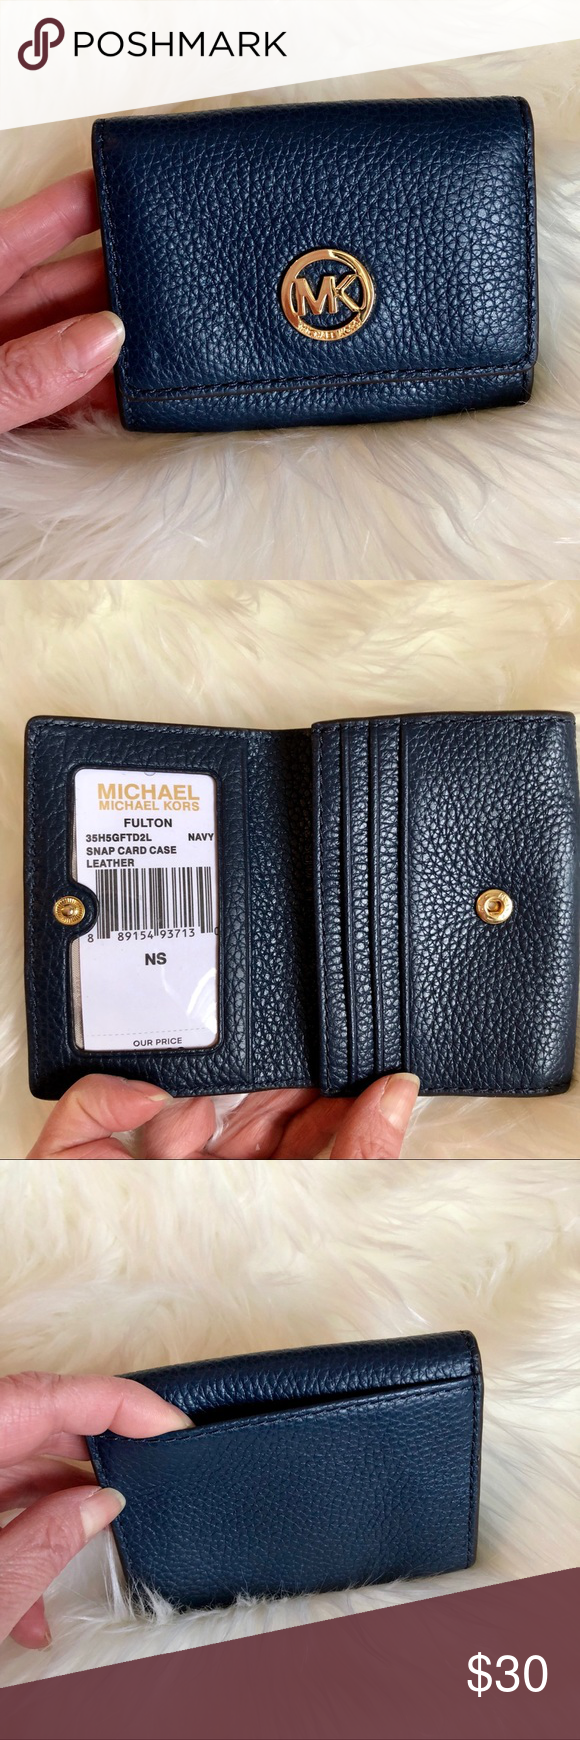 4b7a97921f6f Michael Kors Fulton Navy Snap Case Case NWT Michael Kors Navy Fulton Snap  Card Case. Rich pebbled leather with gold hardware. Snap closure with card  slots.